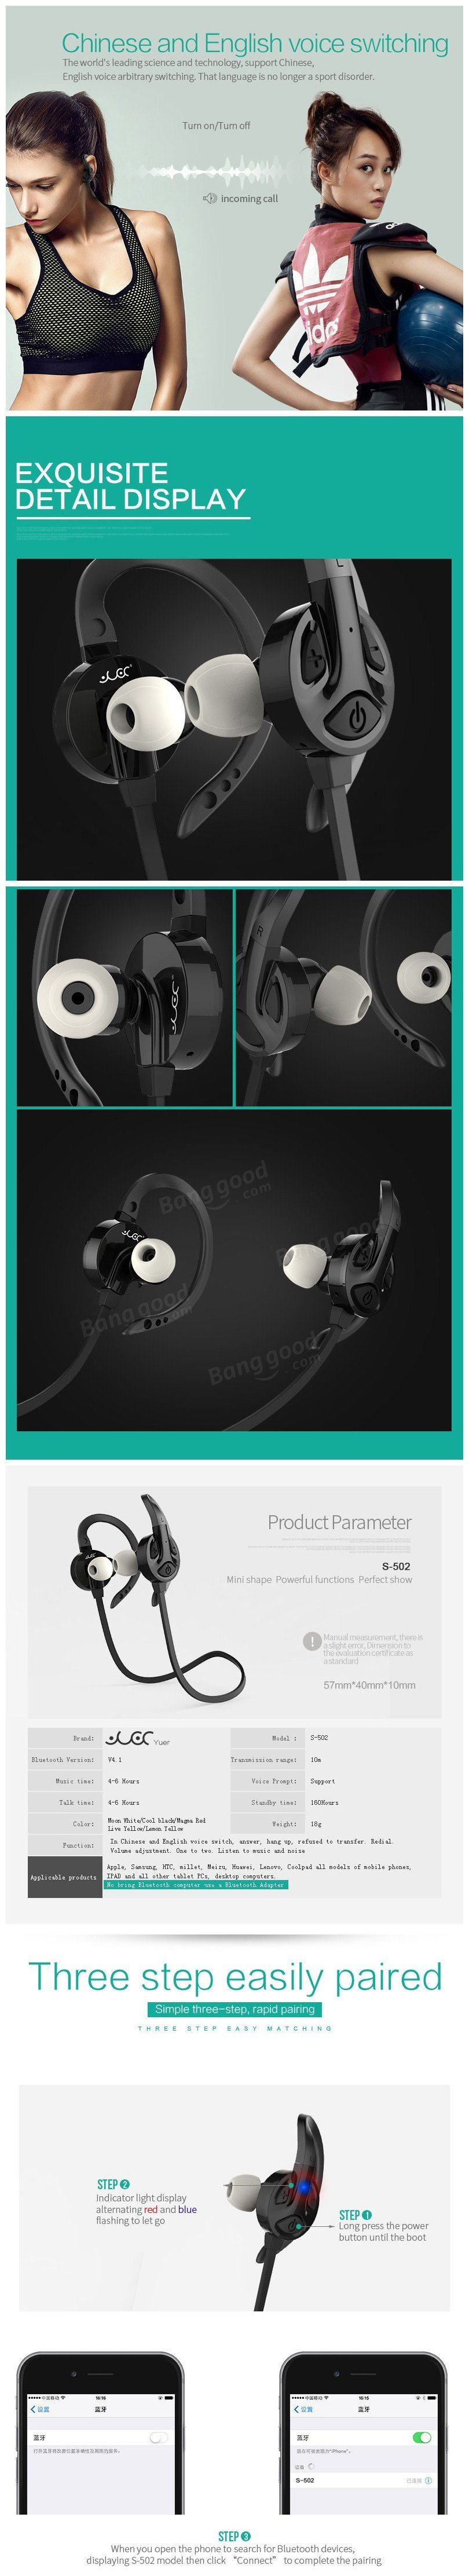 S-502 Bluetooth Earphone Stereo Wireless Sport Running Headphone Music Headset with Microphone